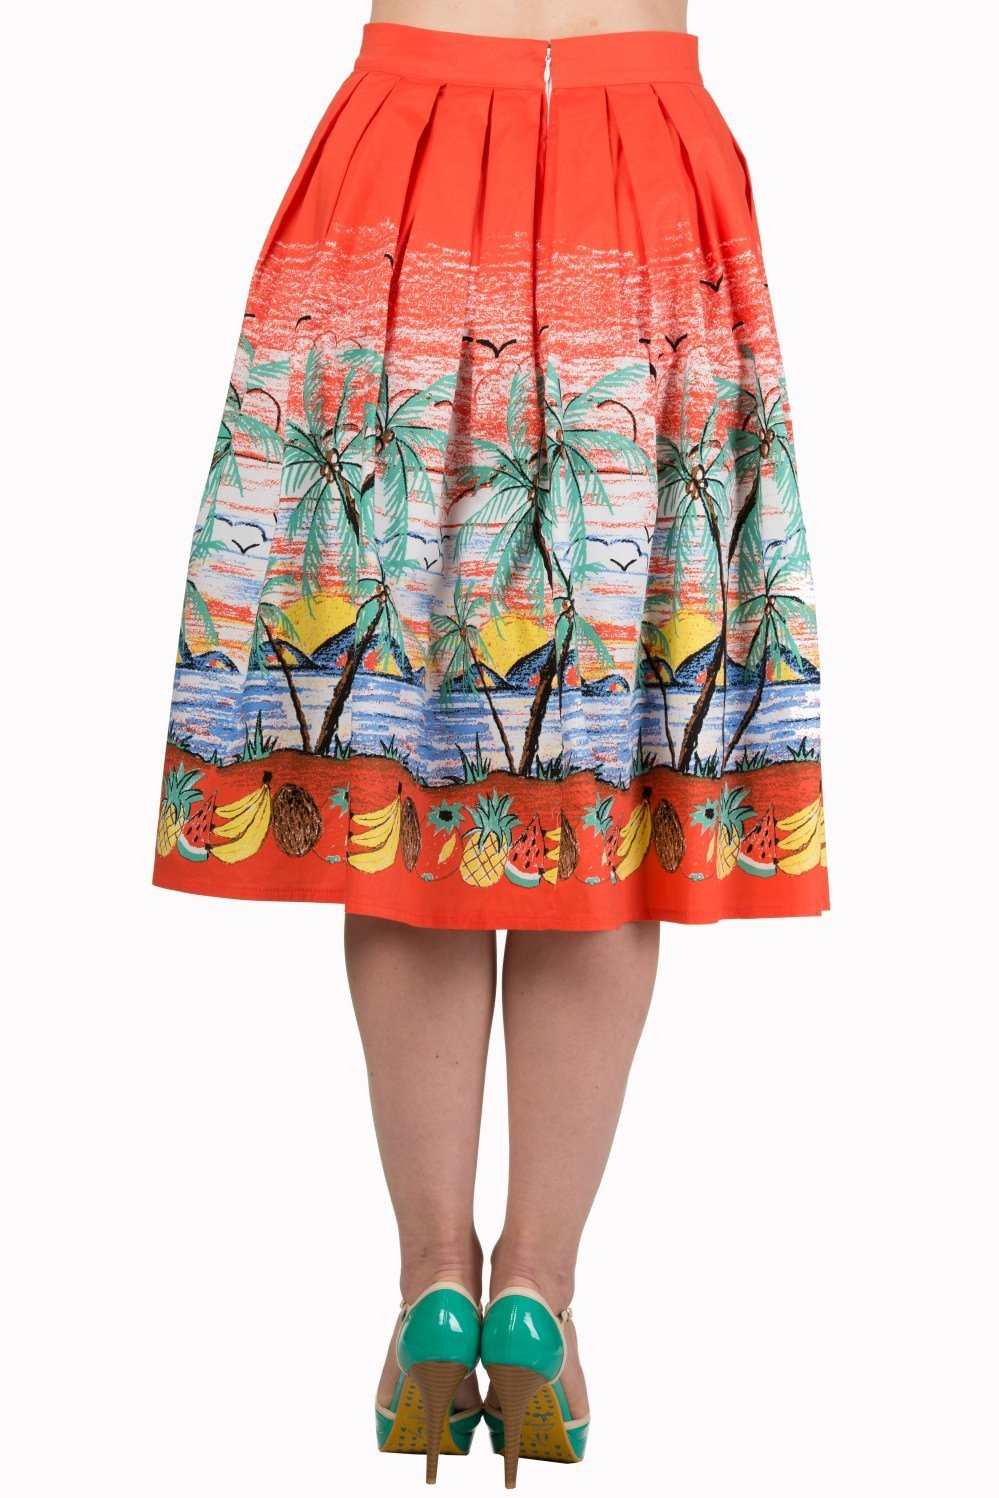 Banned Palm Springs Tropical Skirt (Plus Size) - Bohemian Finds